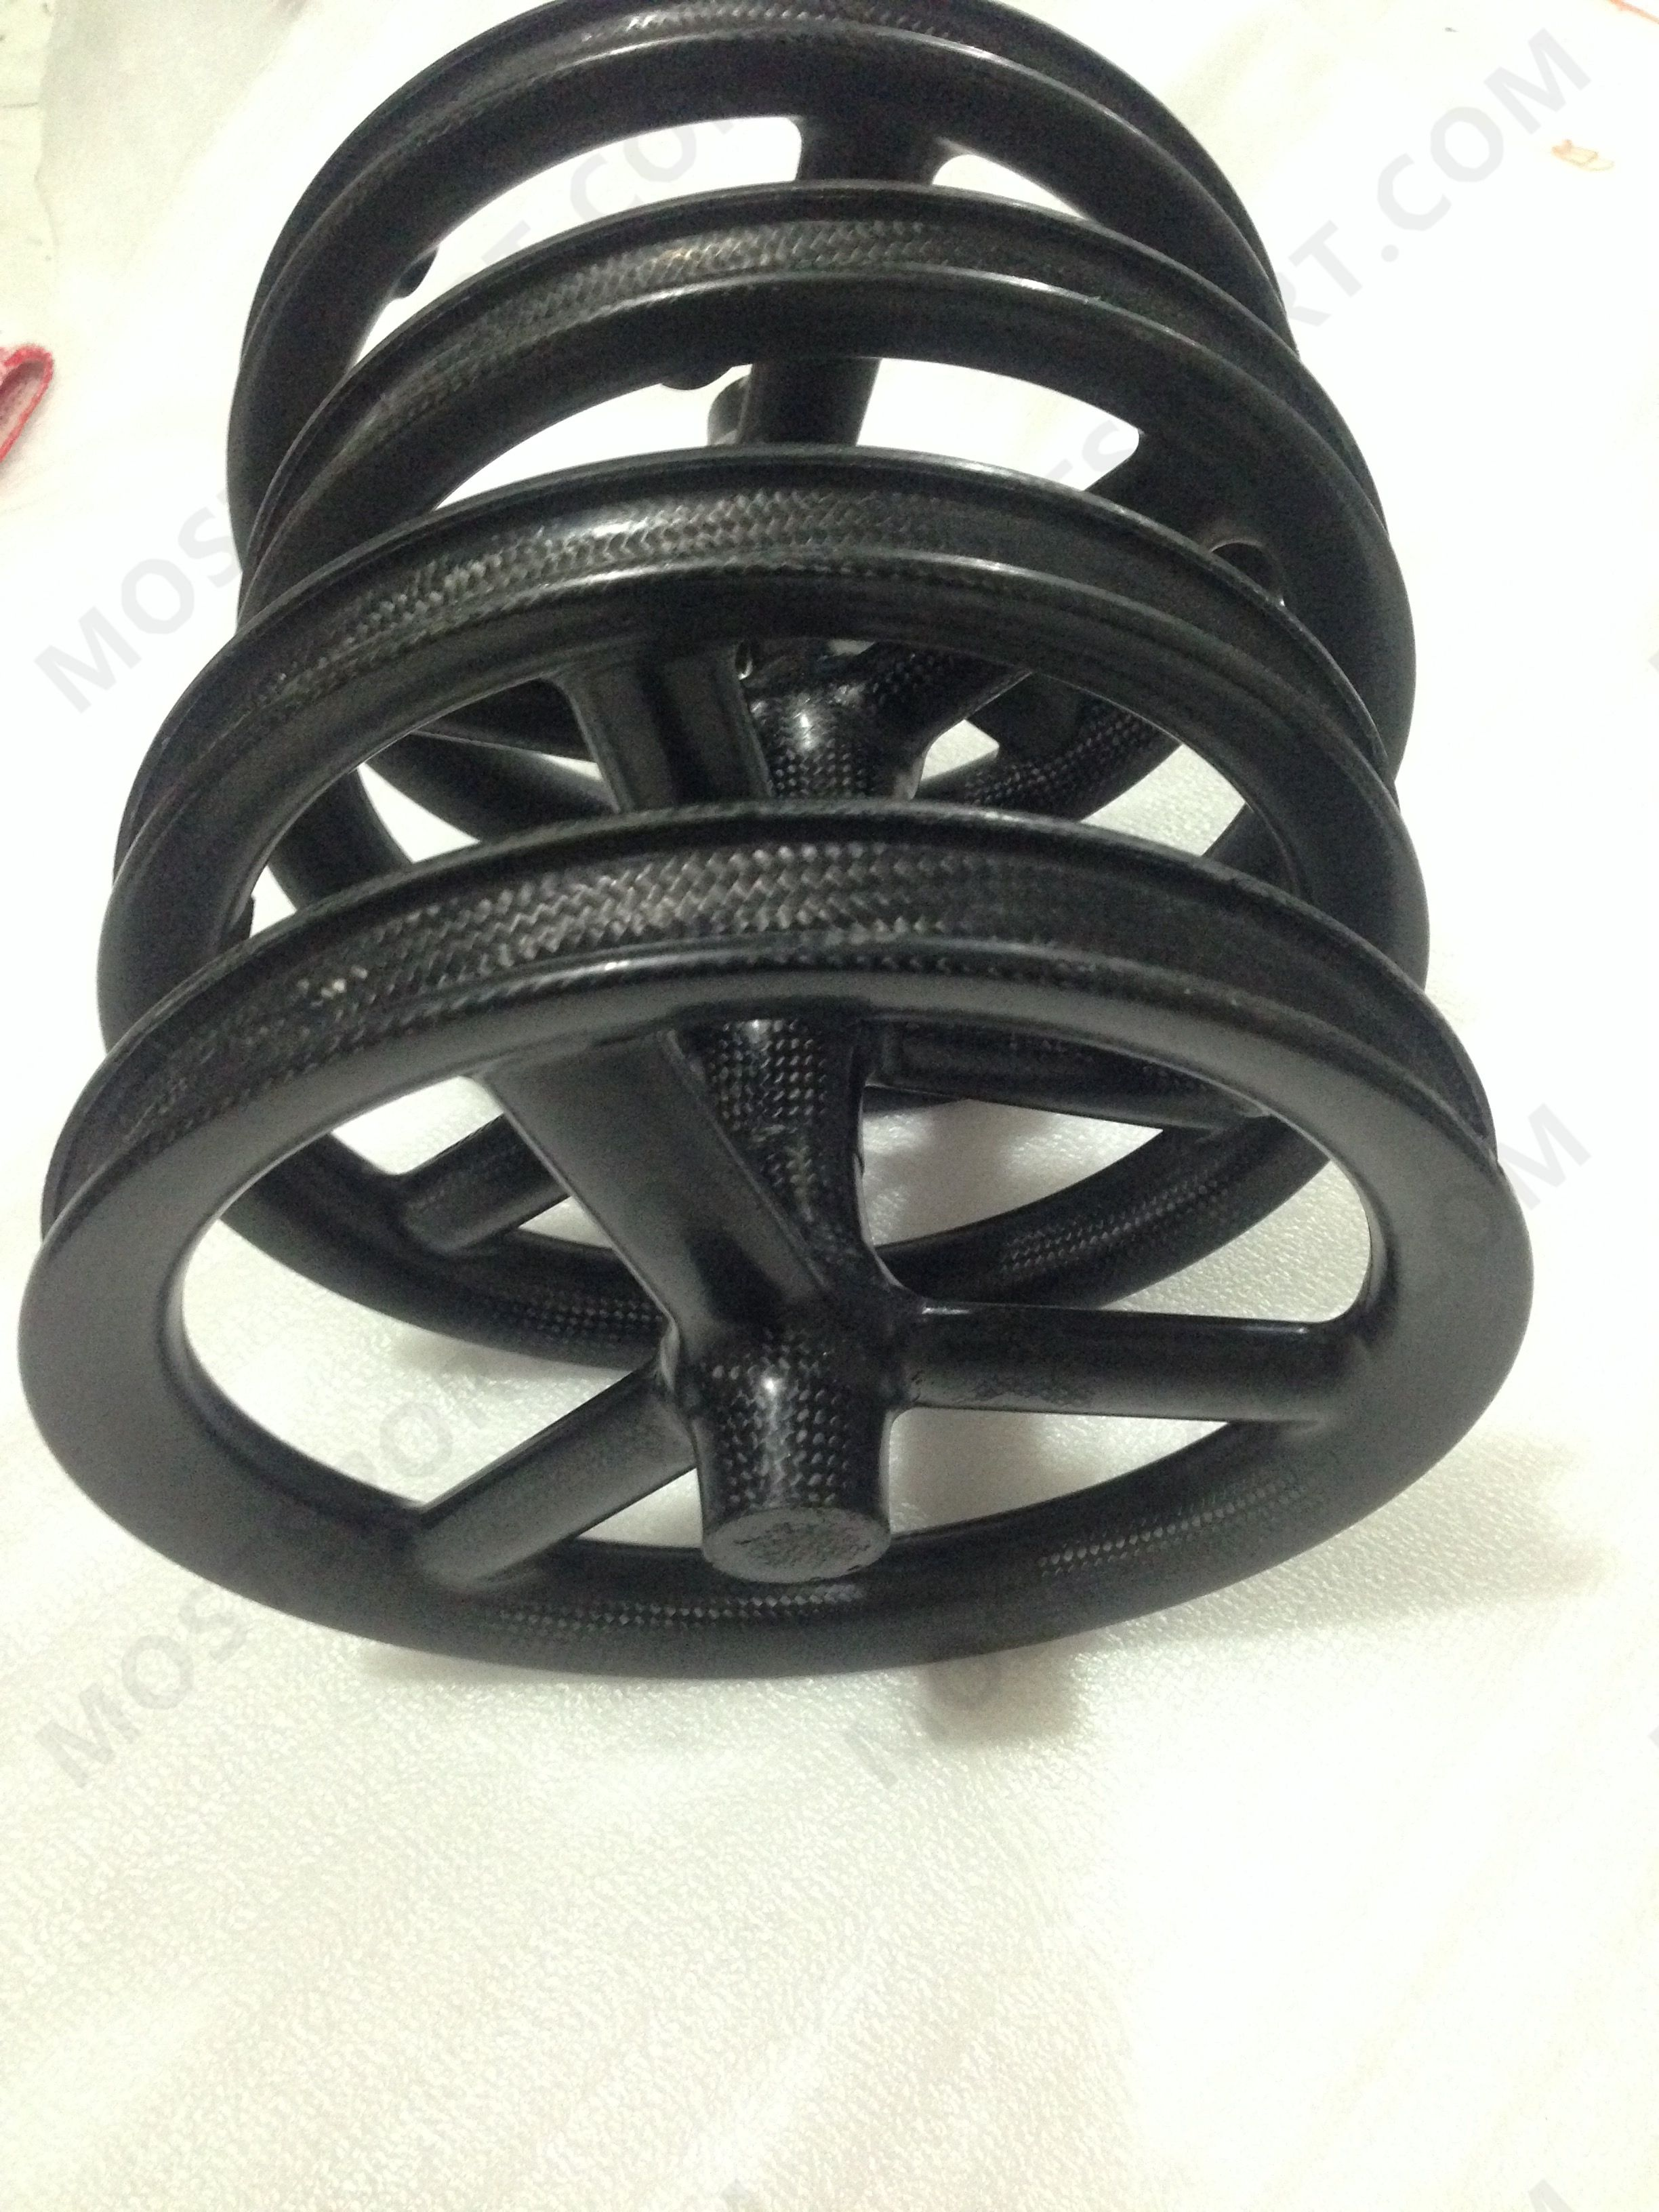 12inch Carbon Tri Spoke Wheels For Child Bicycle Carbon Wheels